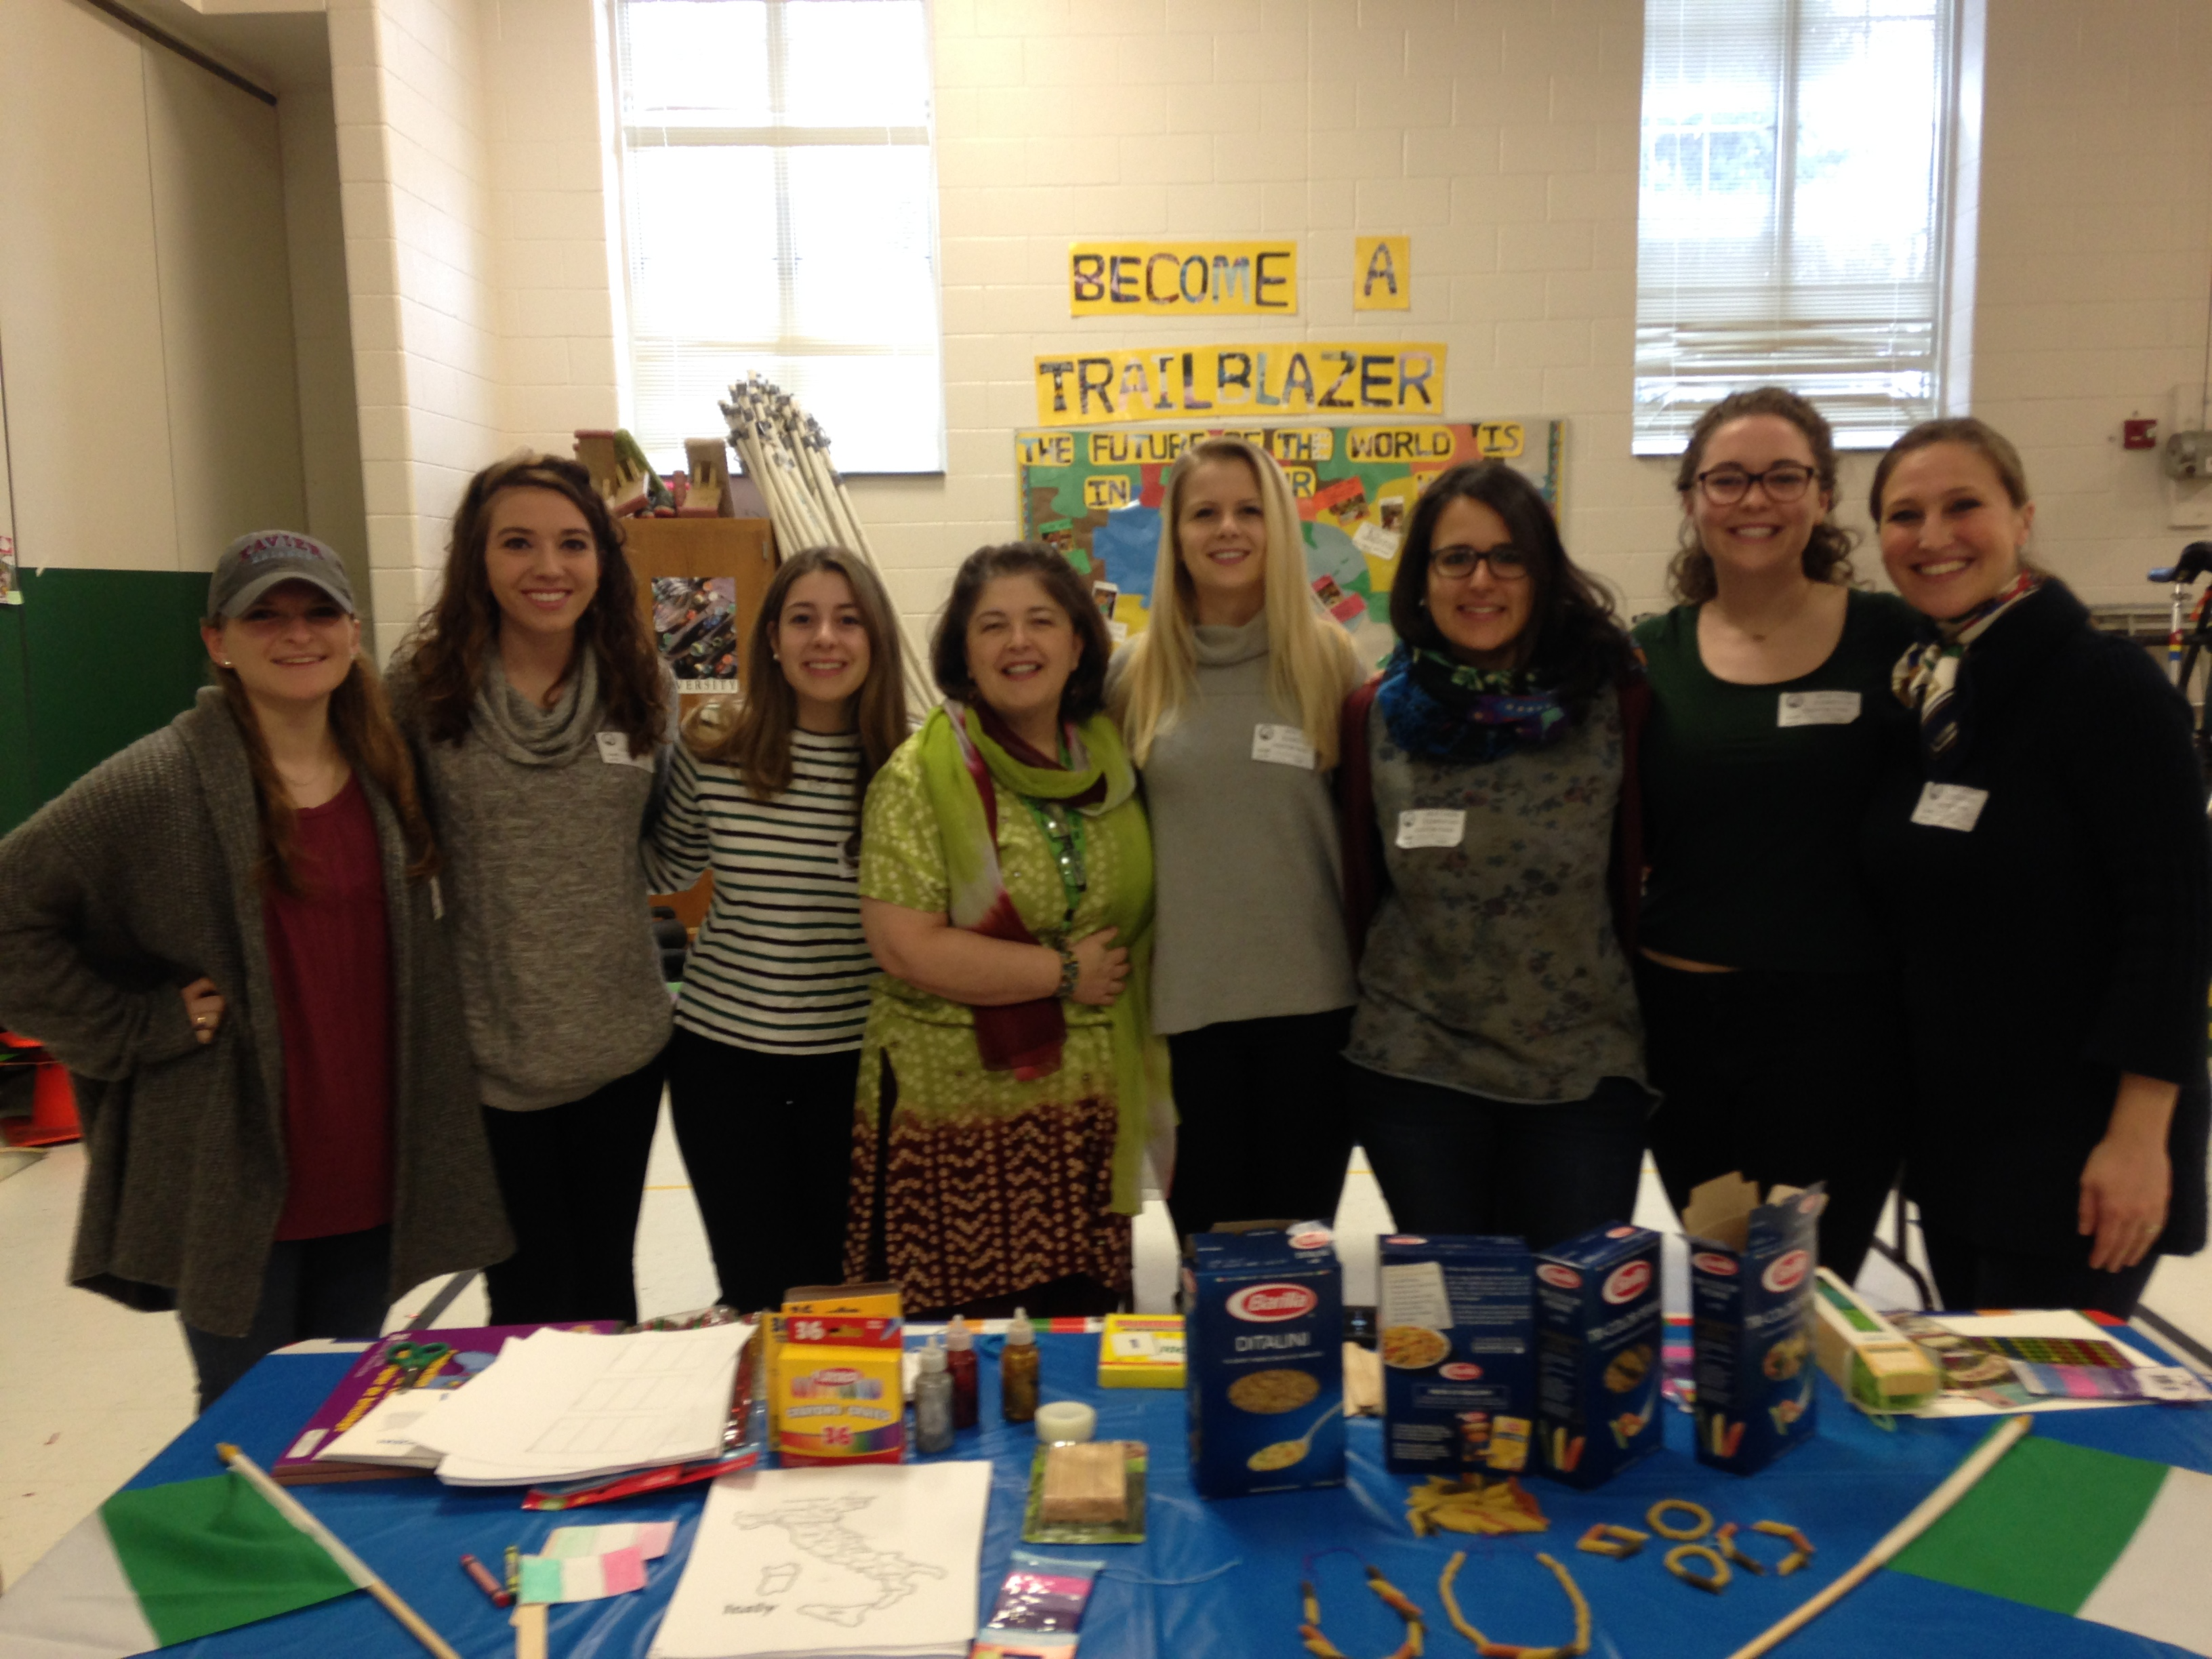 Students prepare Italian-themed crafts for local elementary school